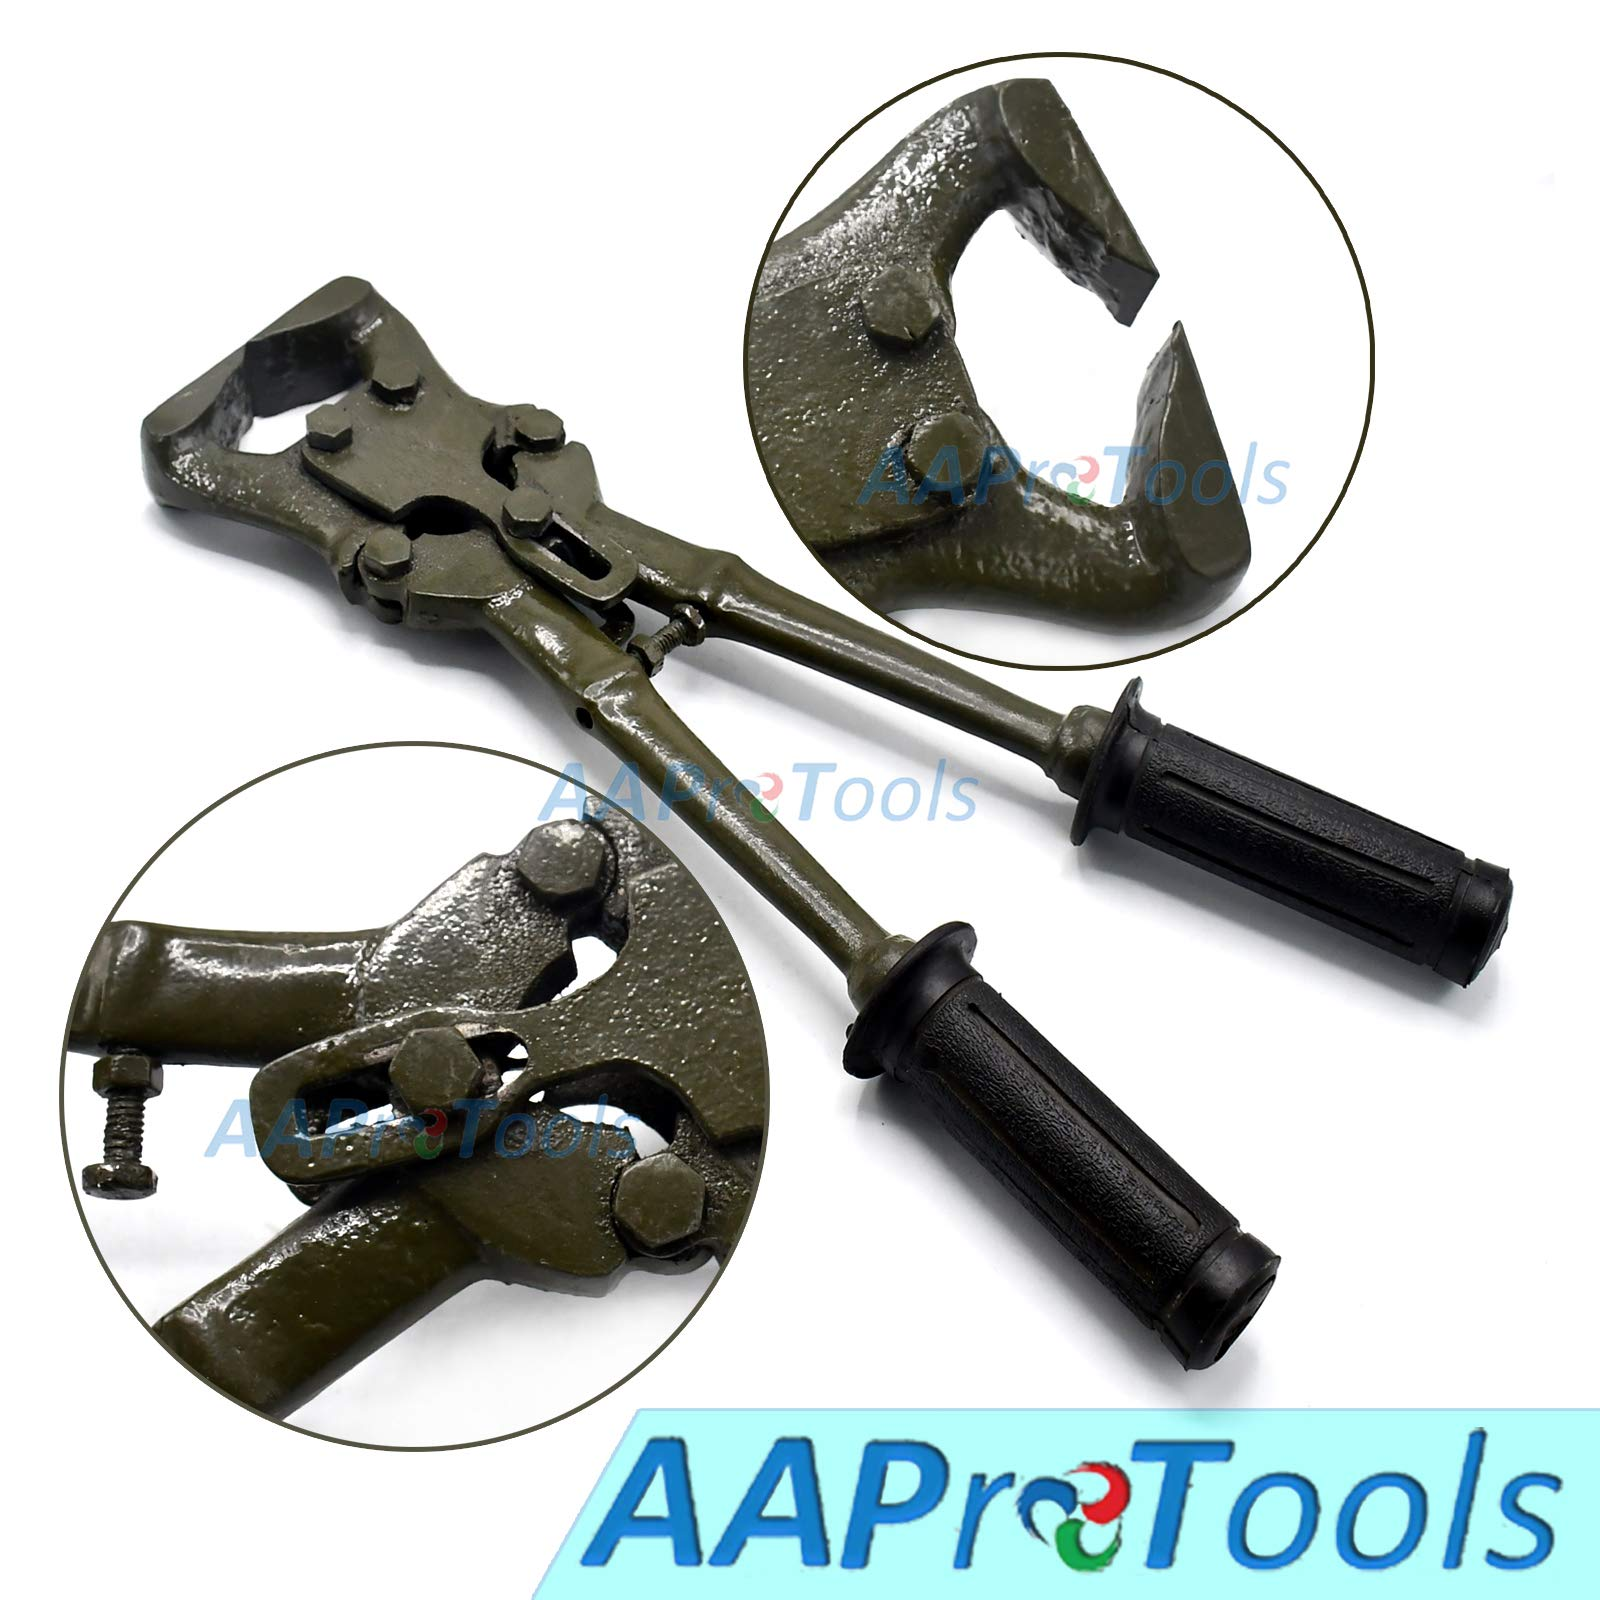 AAProTools Compound Action Hoof Nippers 16'' Heavy Duty Livestock Veterinary by AAProTools